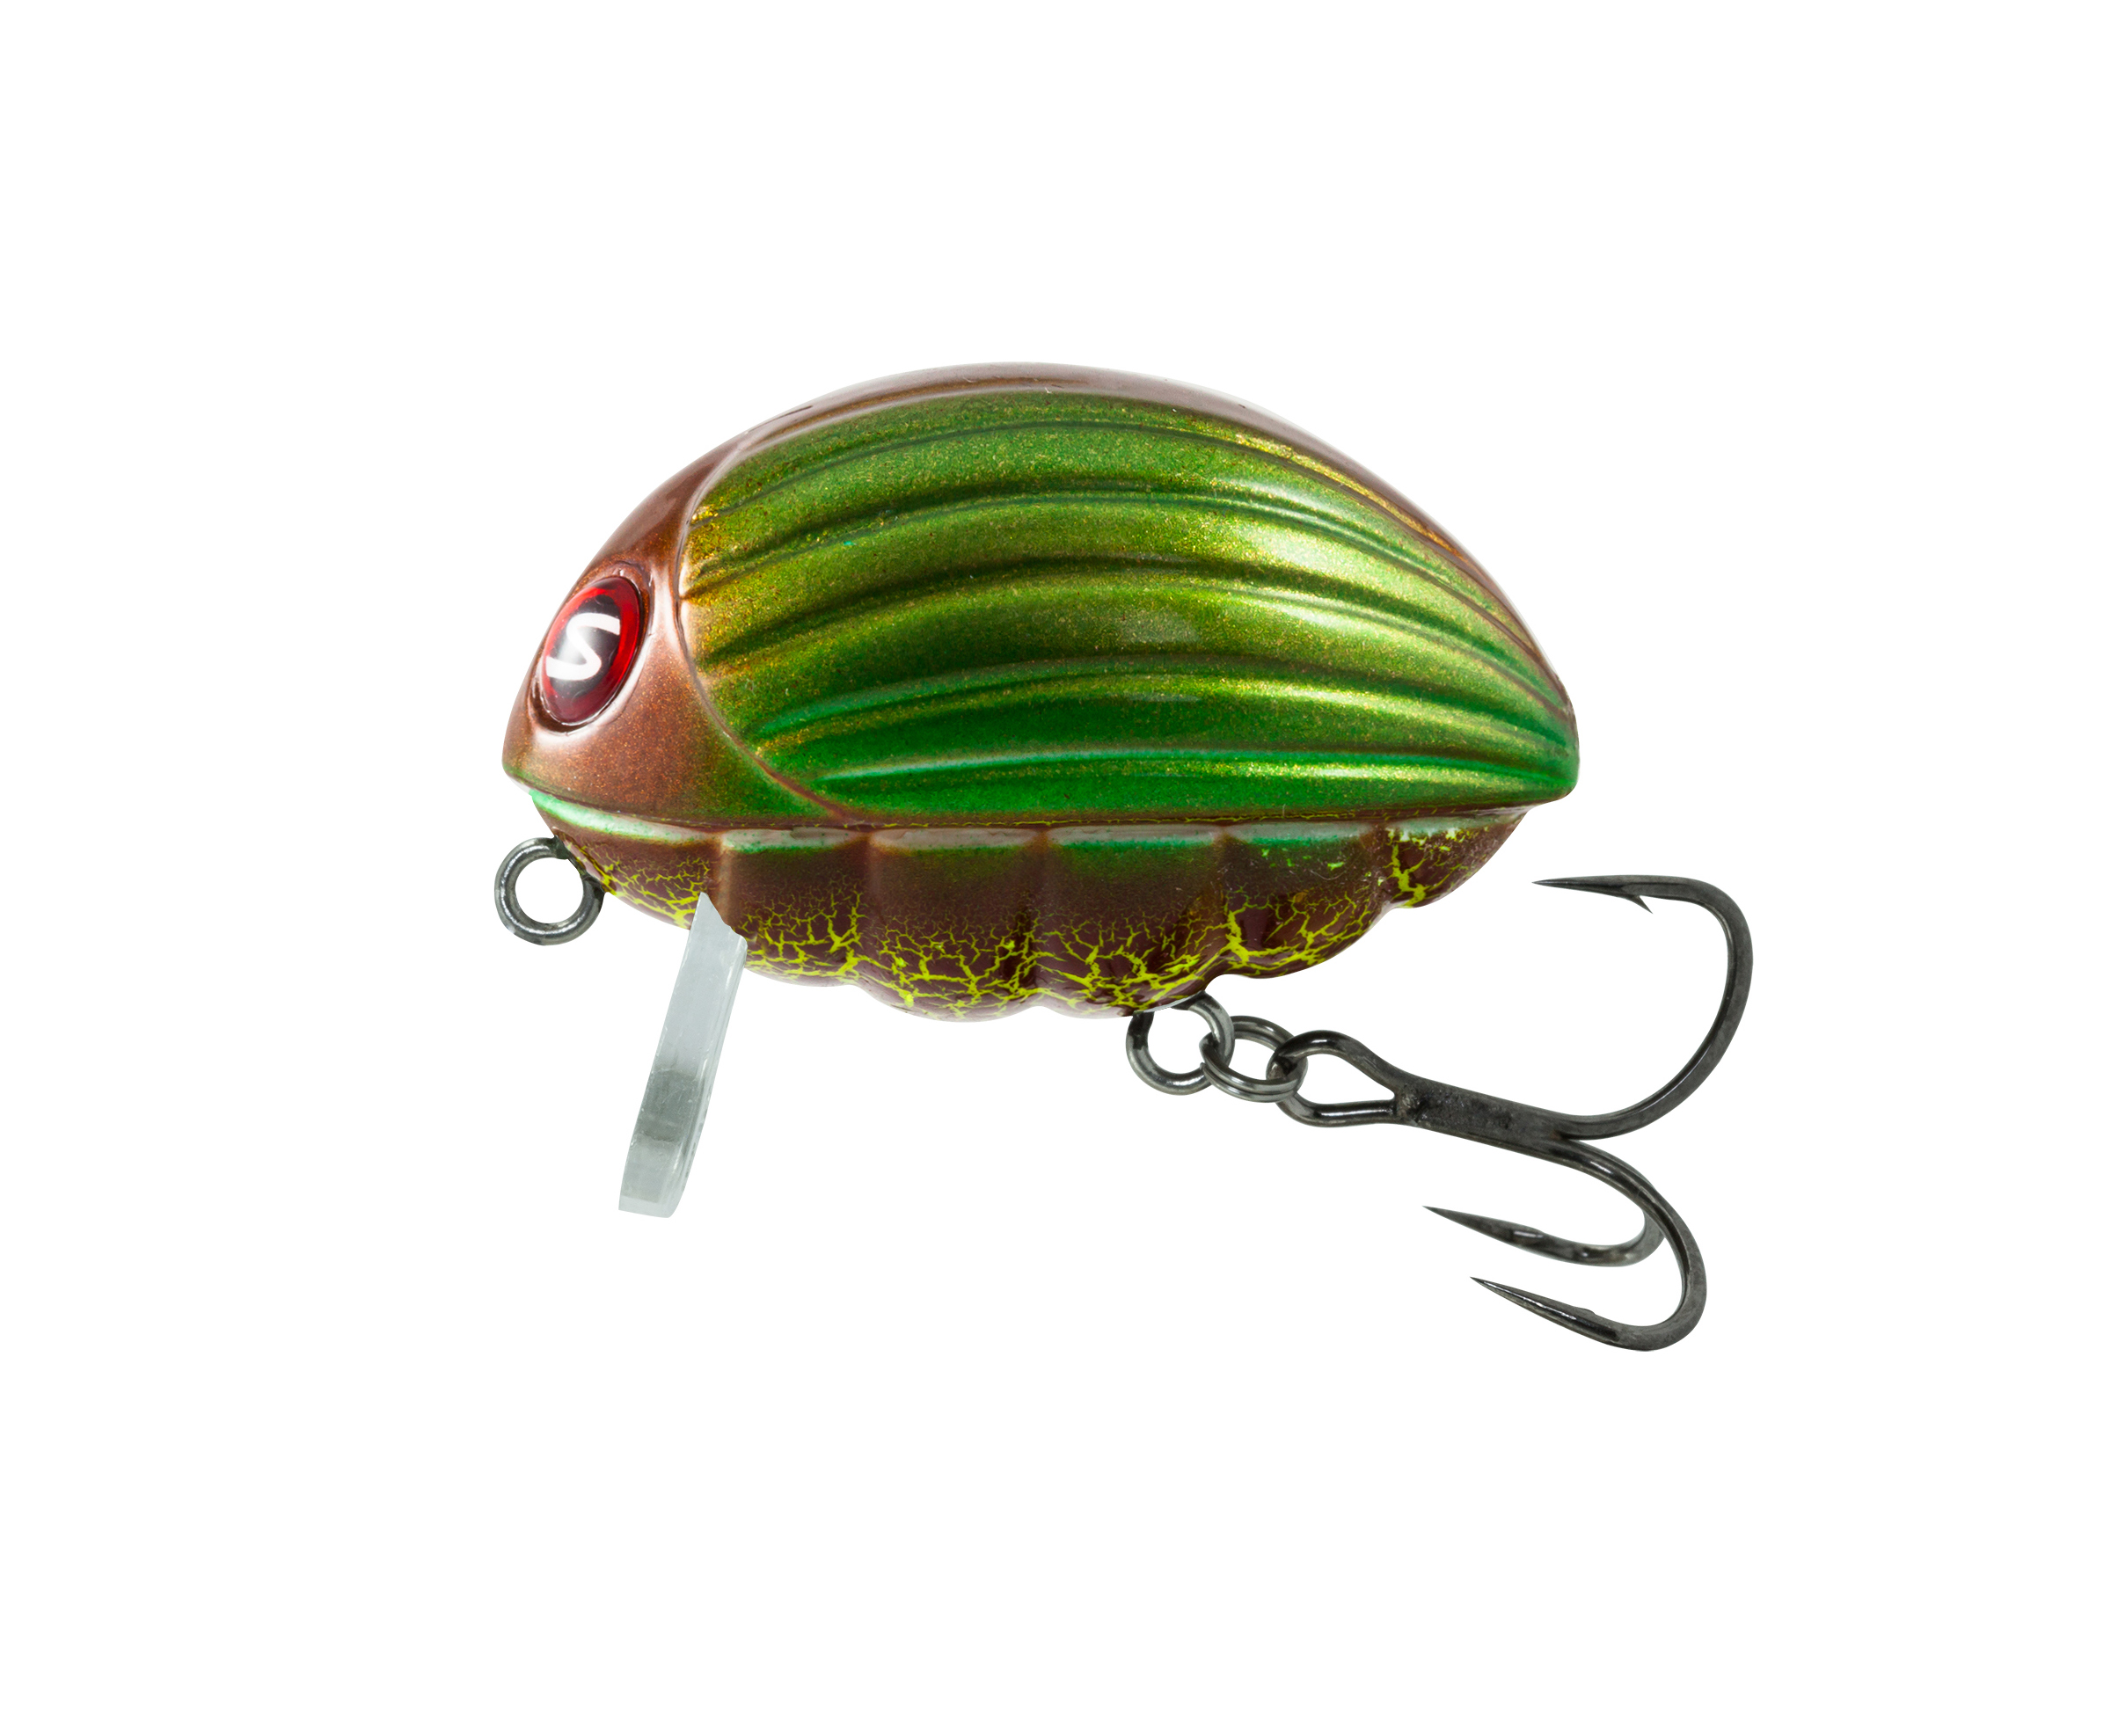 hooks-line-lures-years-best-new-fishing-gear, Soft Baits